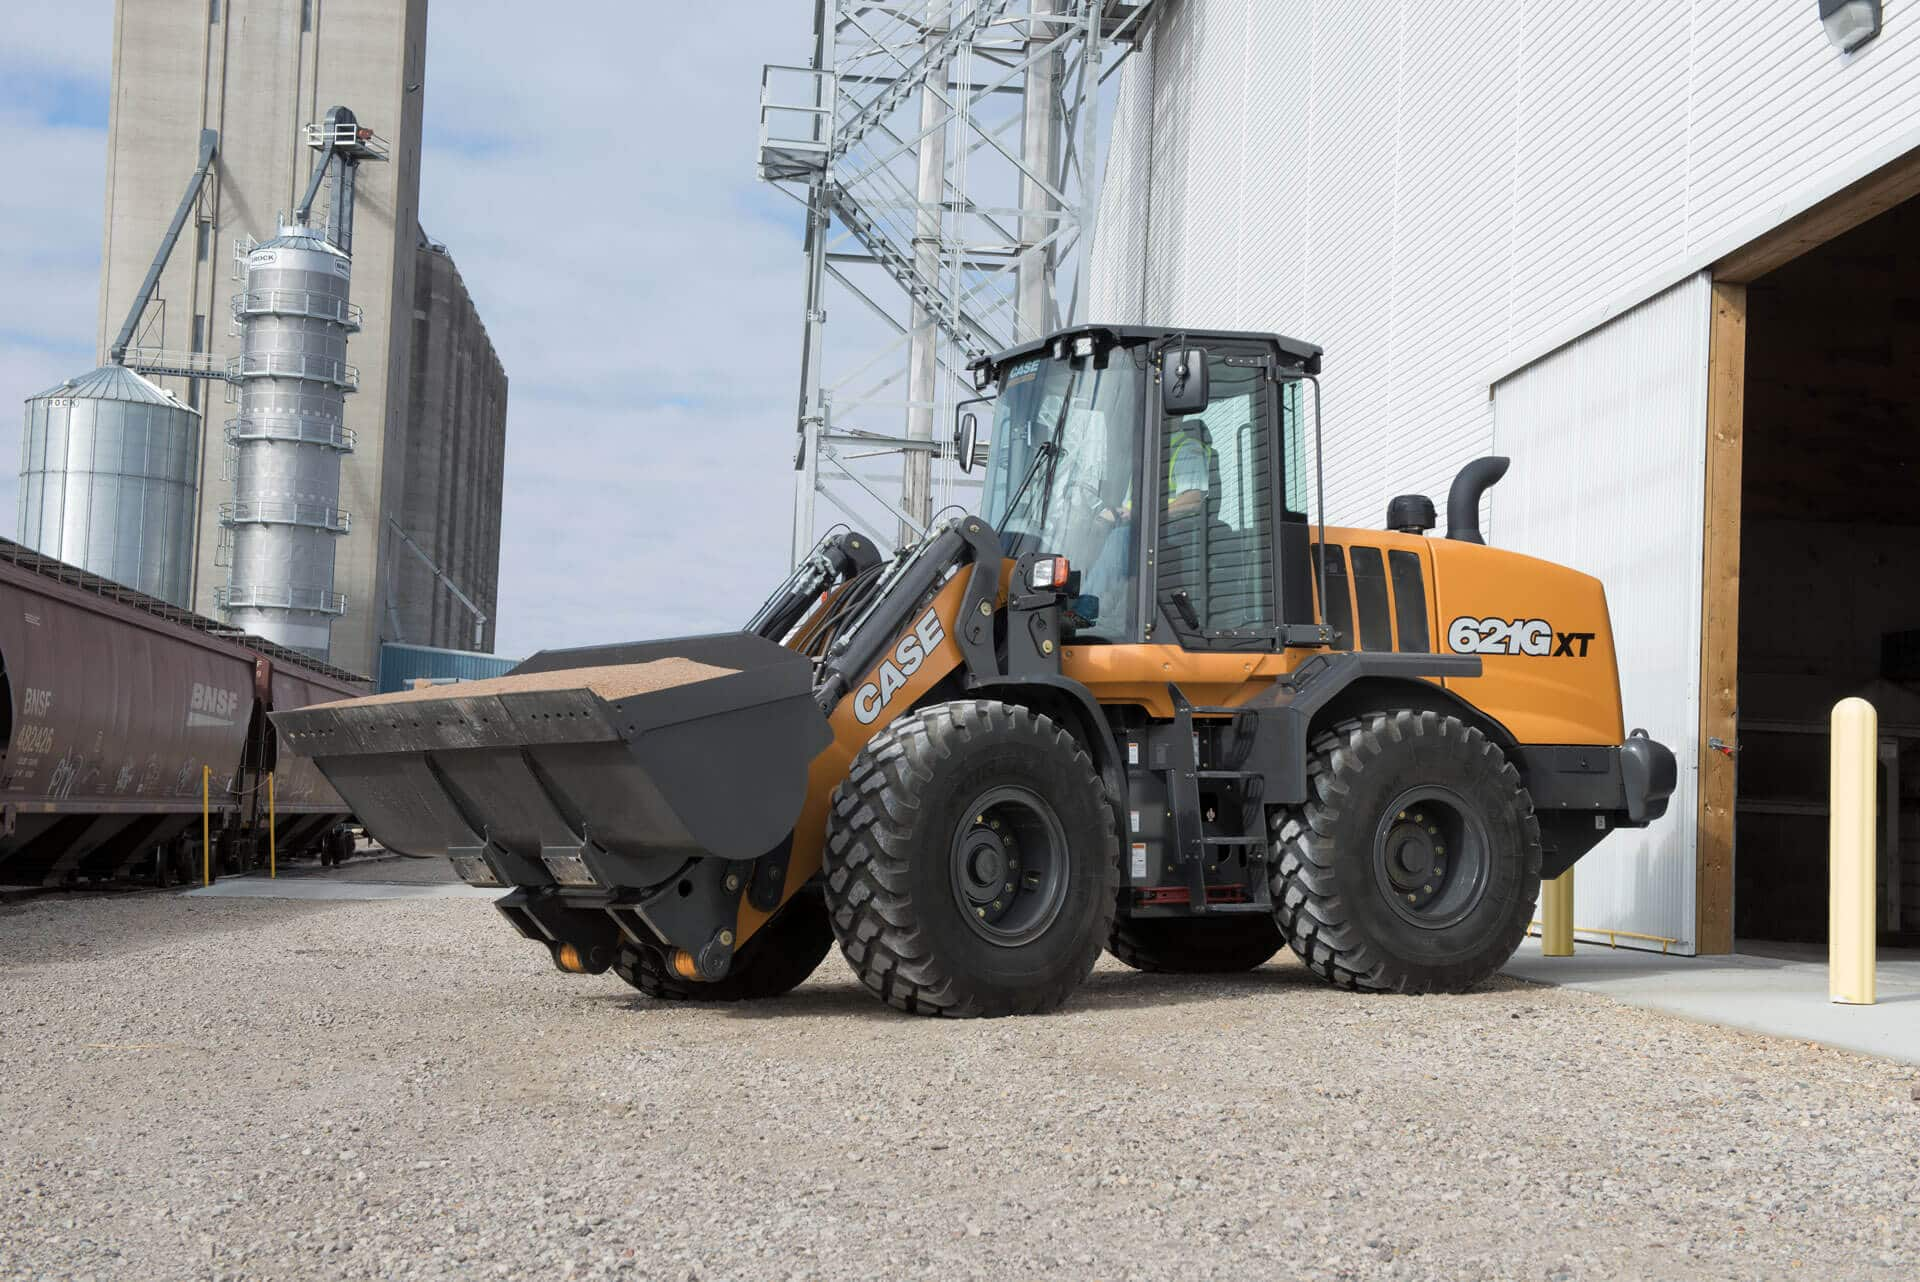 Volvo Dealers Nh >> CASE 621G Wheel Loader | CASE Construction Equipment